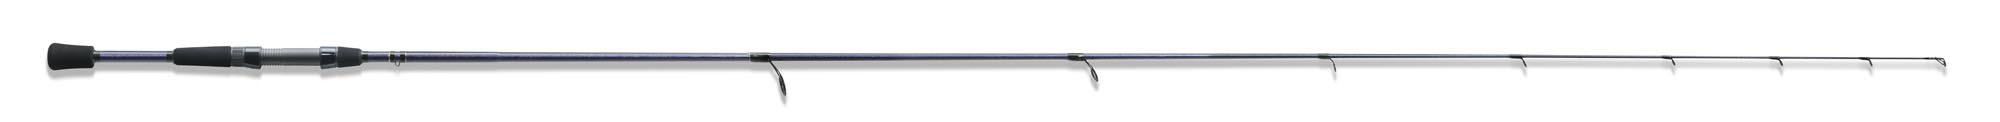 Full fishing pole - ecommerce outdoor product